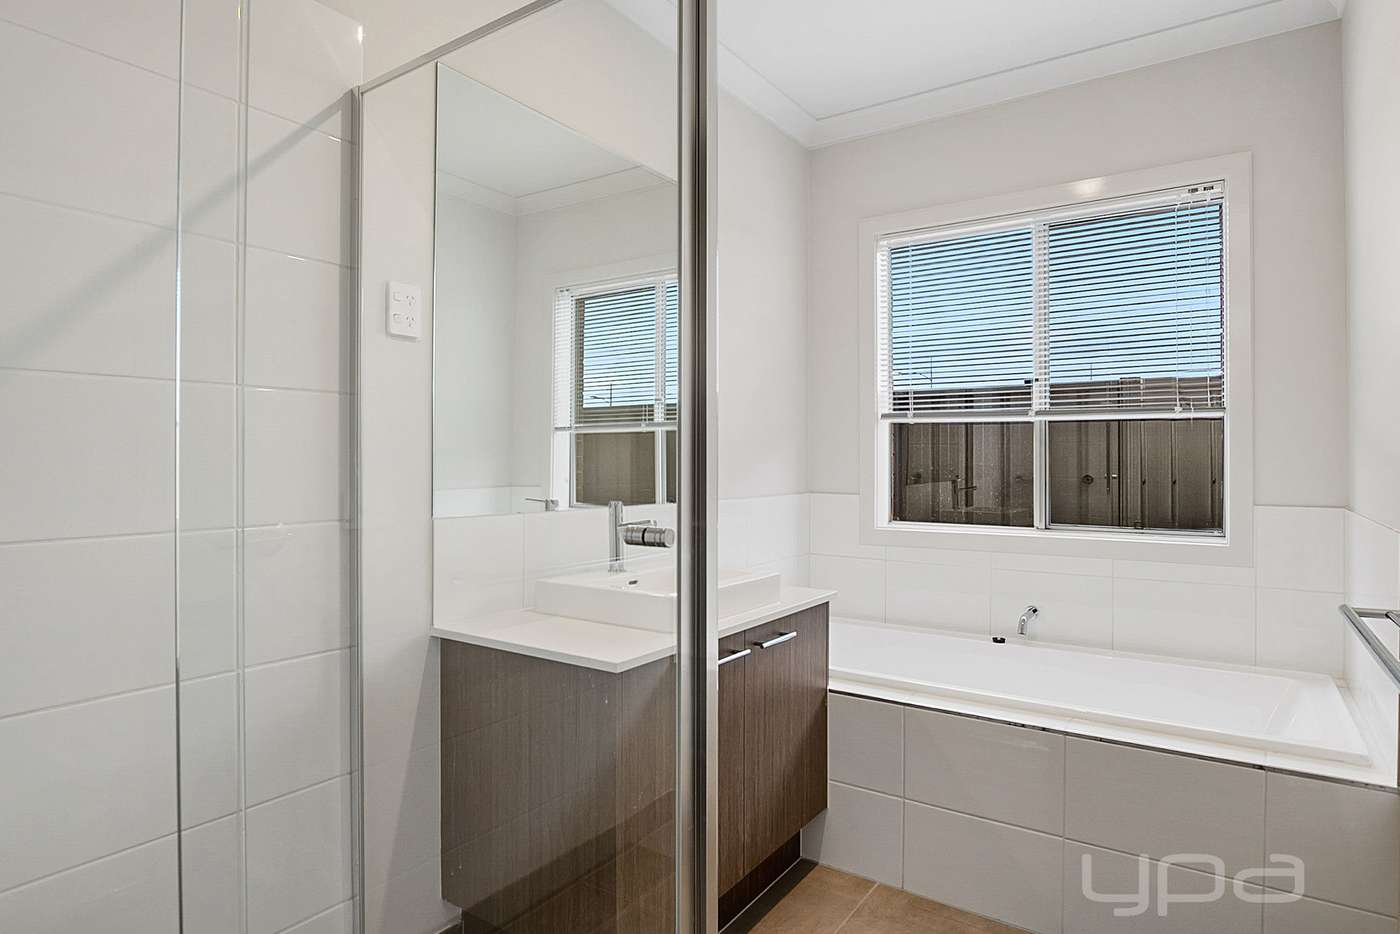 Sixth view of Homely house listing, 9 Stevenage Drive, Strathtulloh VIC 3338